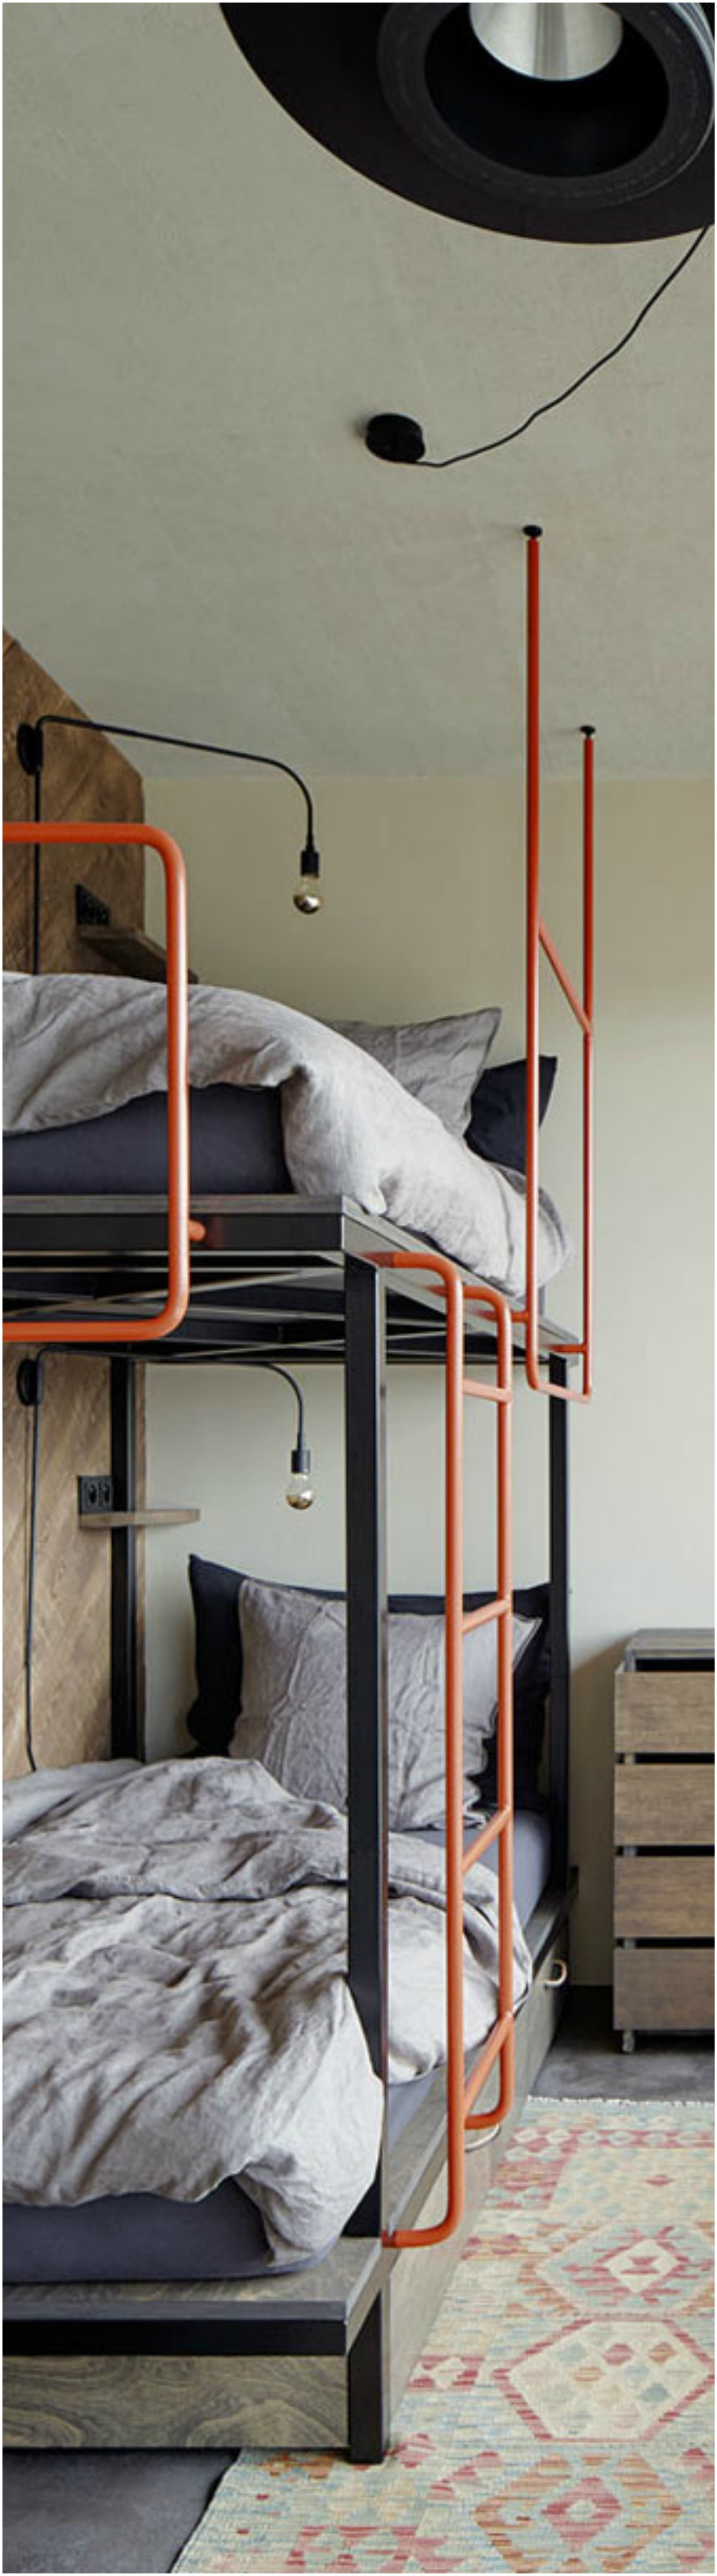 Industrial Style Bunk Bed Finished Off With Orange Metal Components Thewowdecor